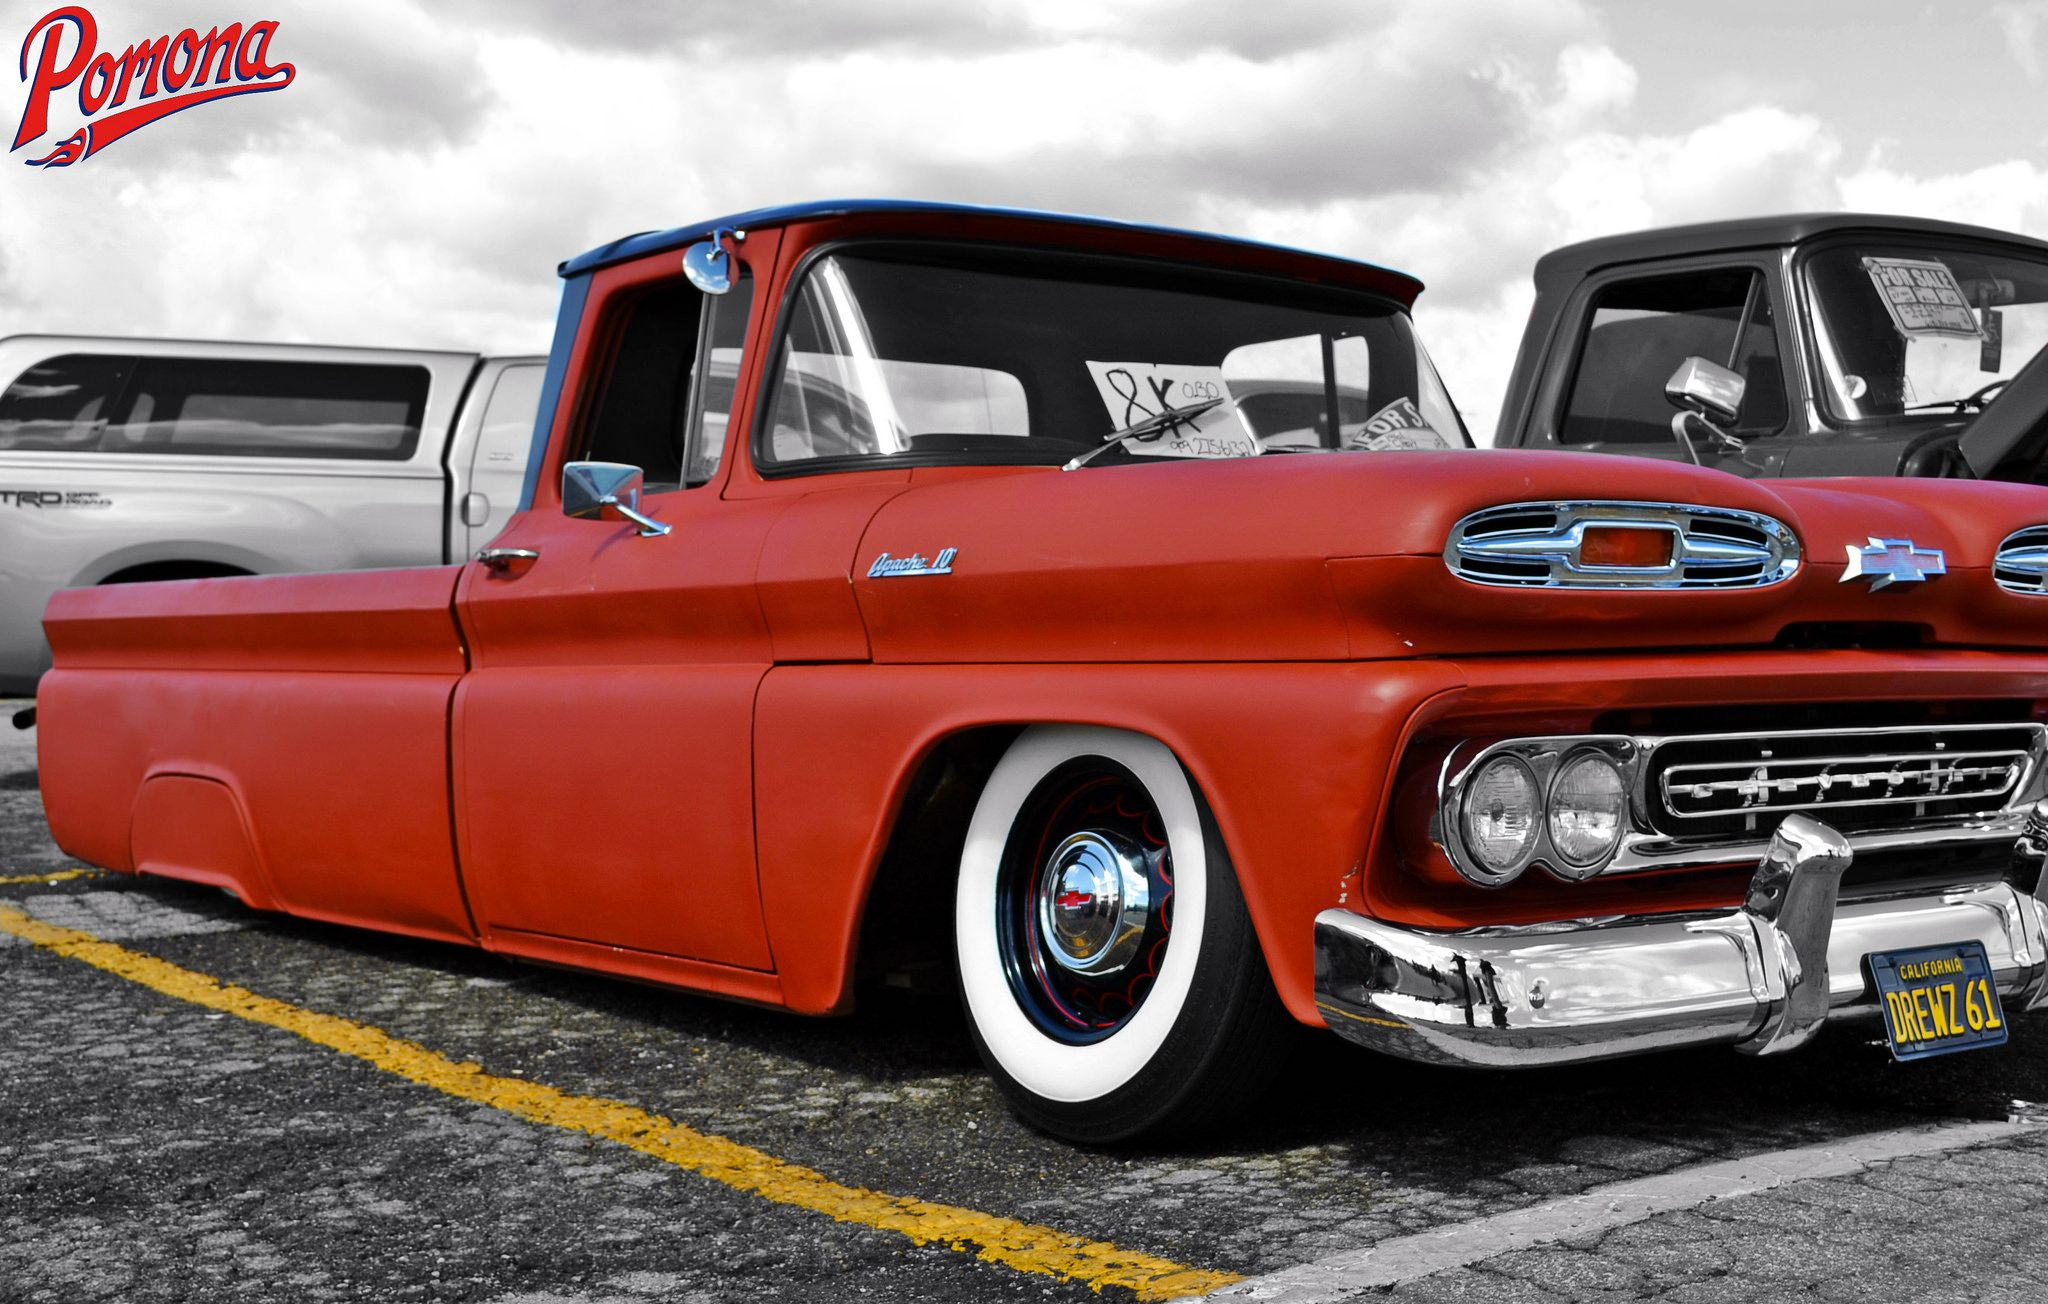 1961 Chevy Apache 10 1960 Chevrolet Board C10 Truck Https Flickr P Ejtbm6